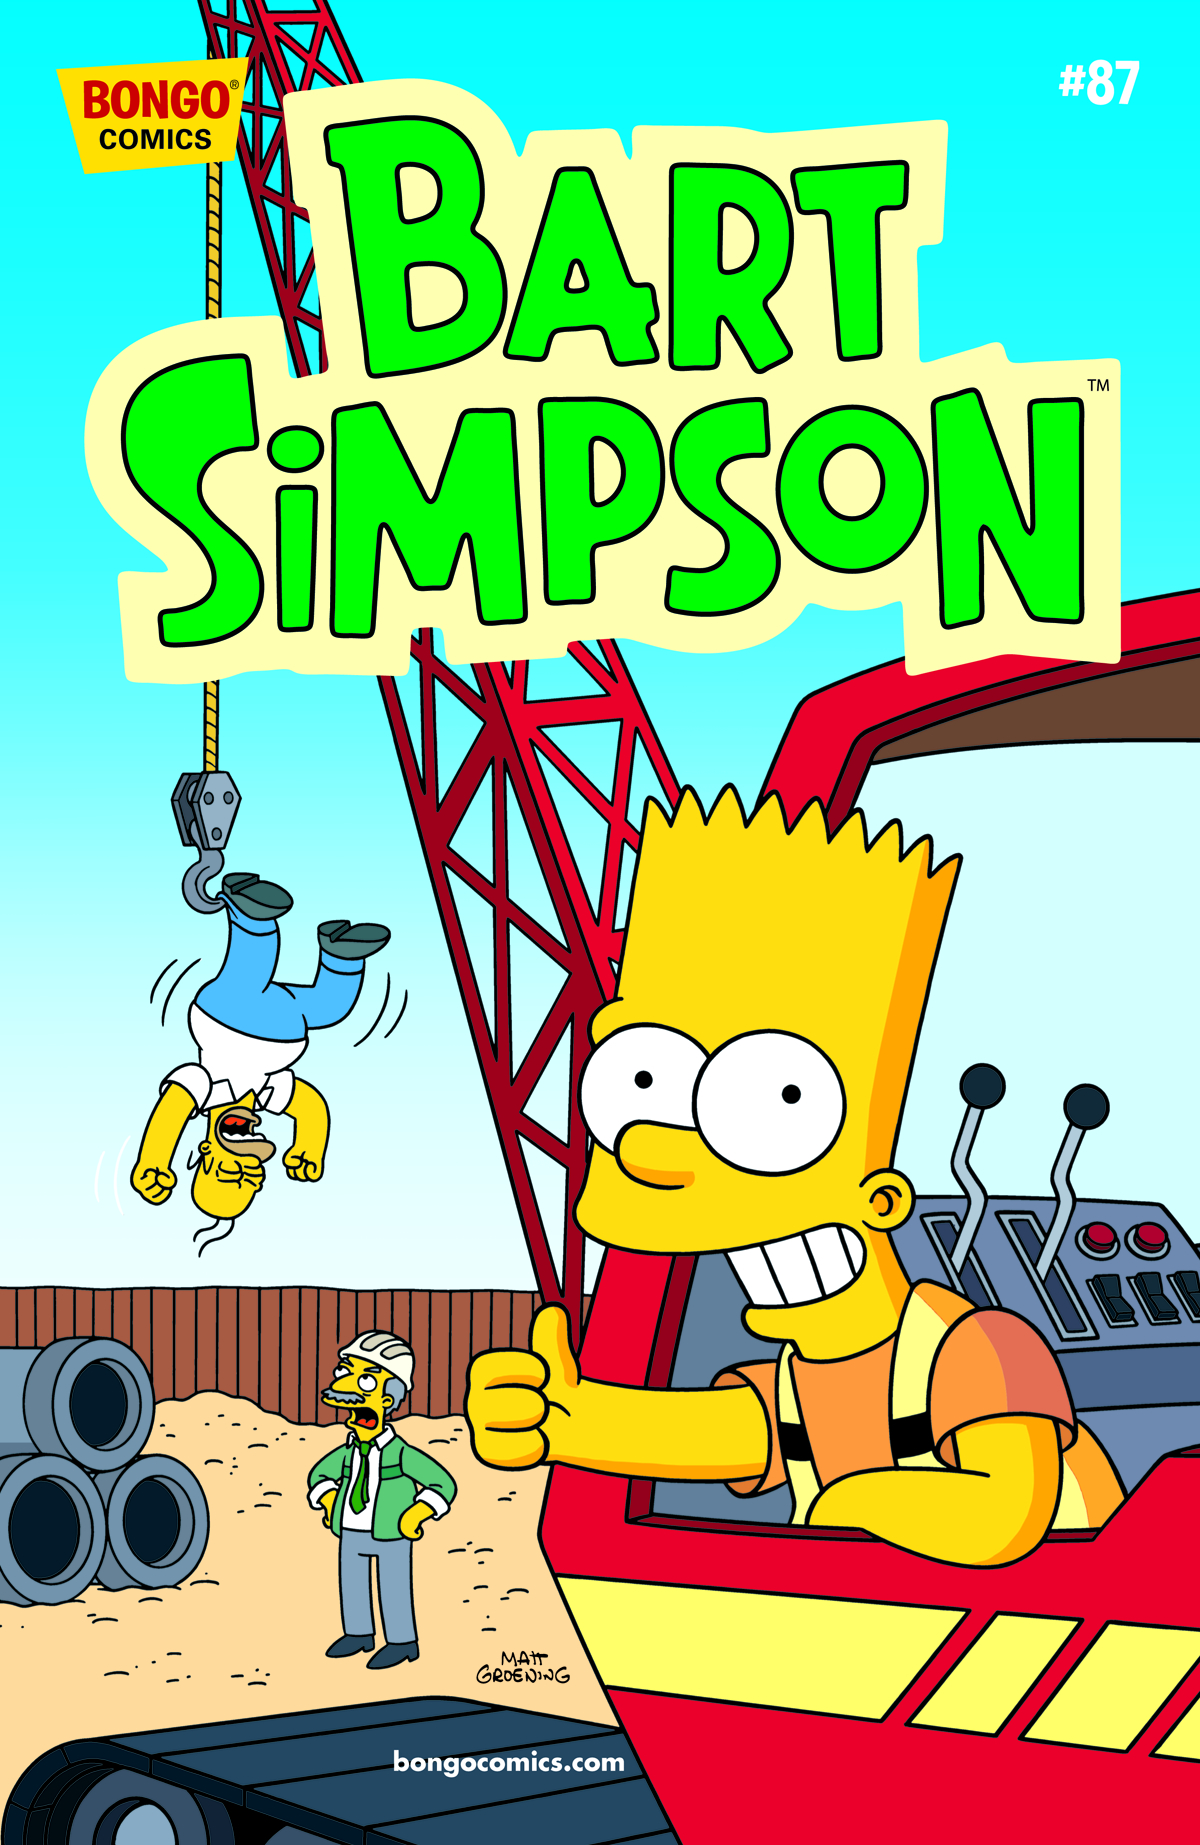 BART SIMPSON COMICS #87